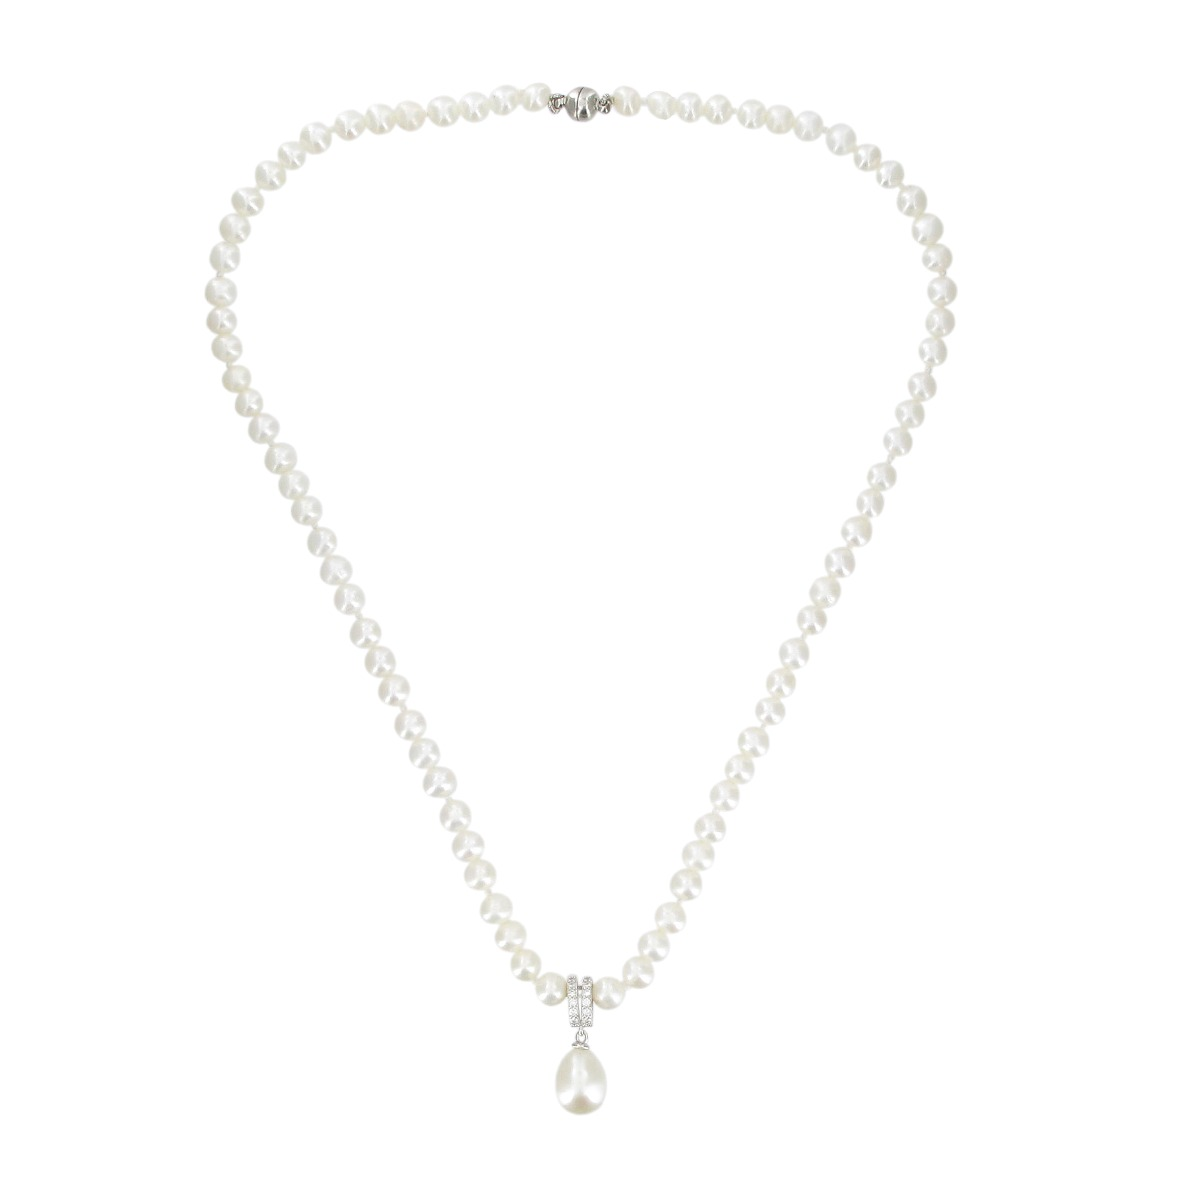 White pearl drop neacklace